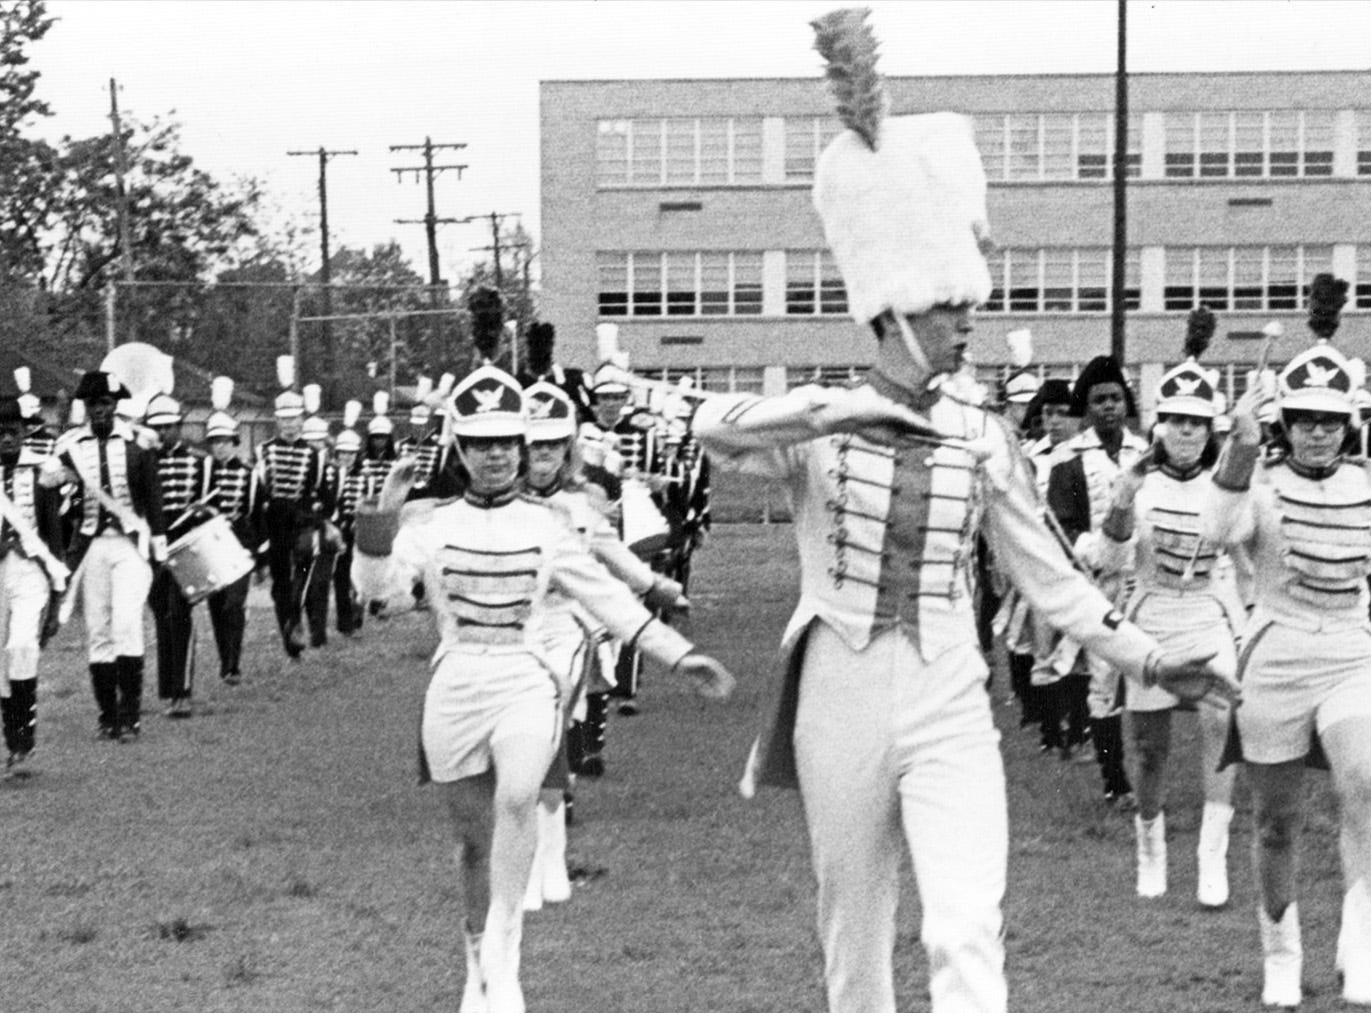 George Washington High School band during practice in 1967.